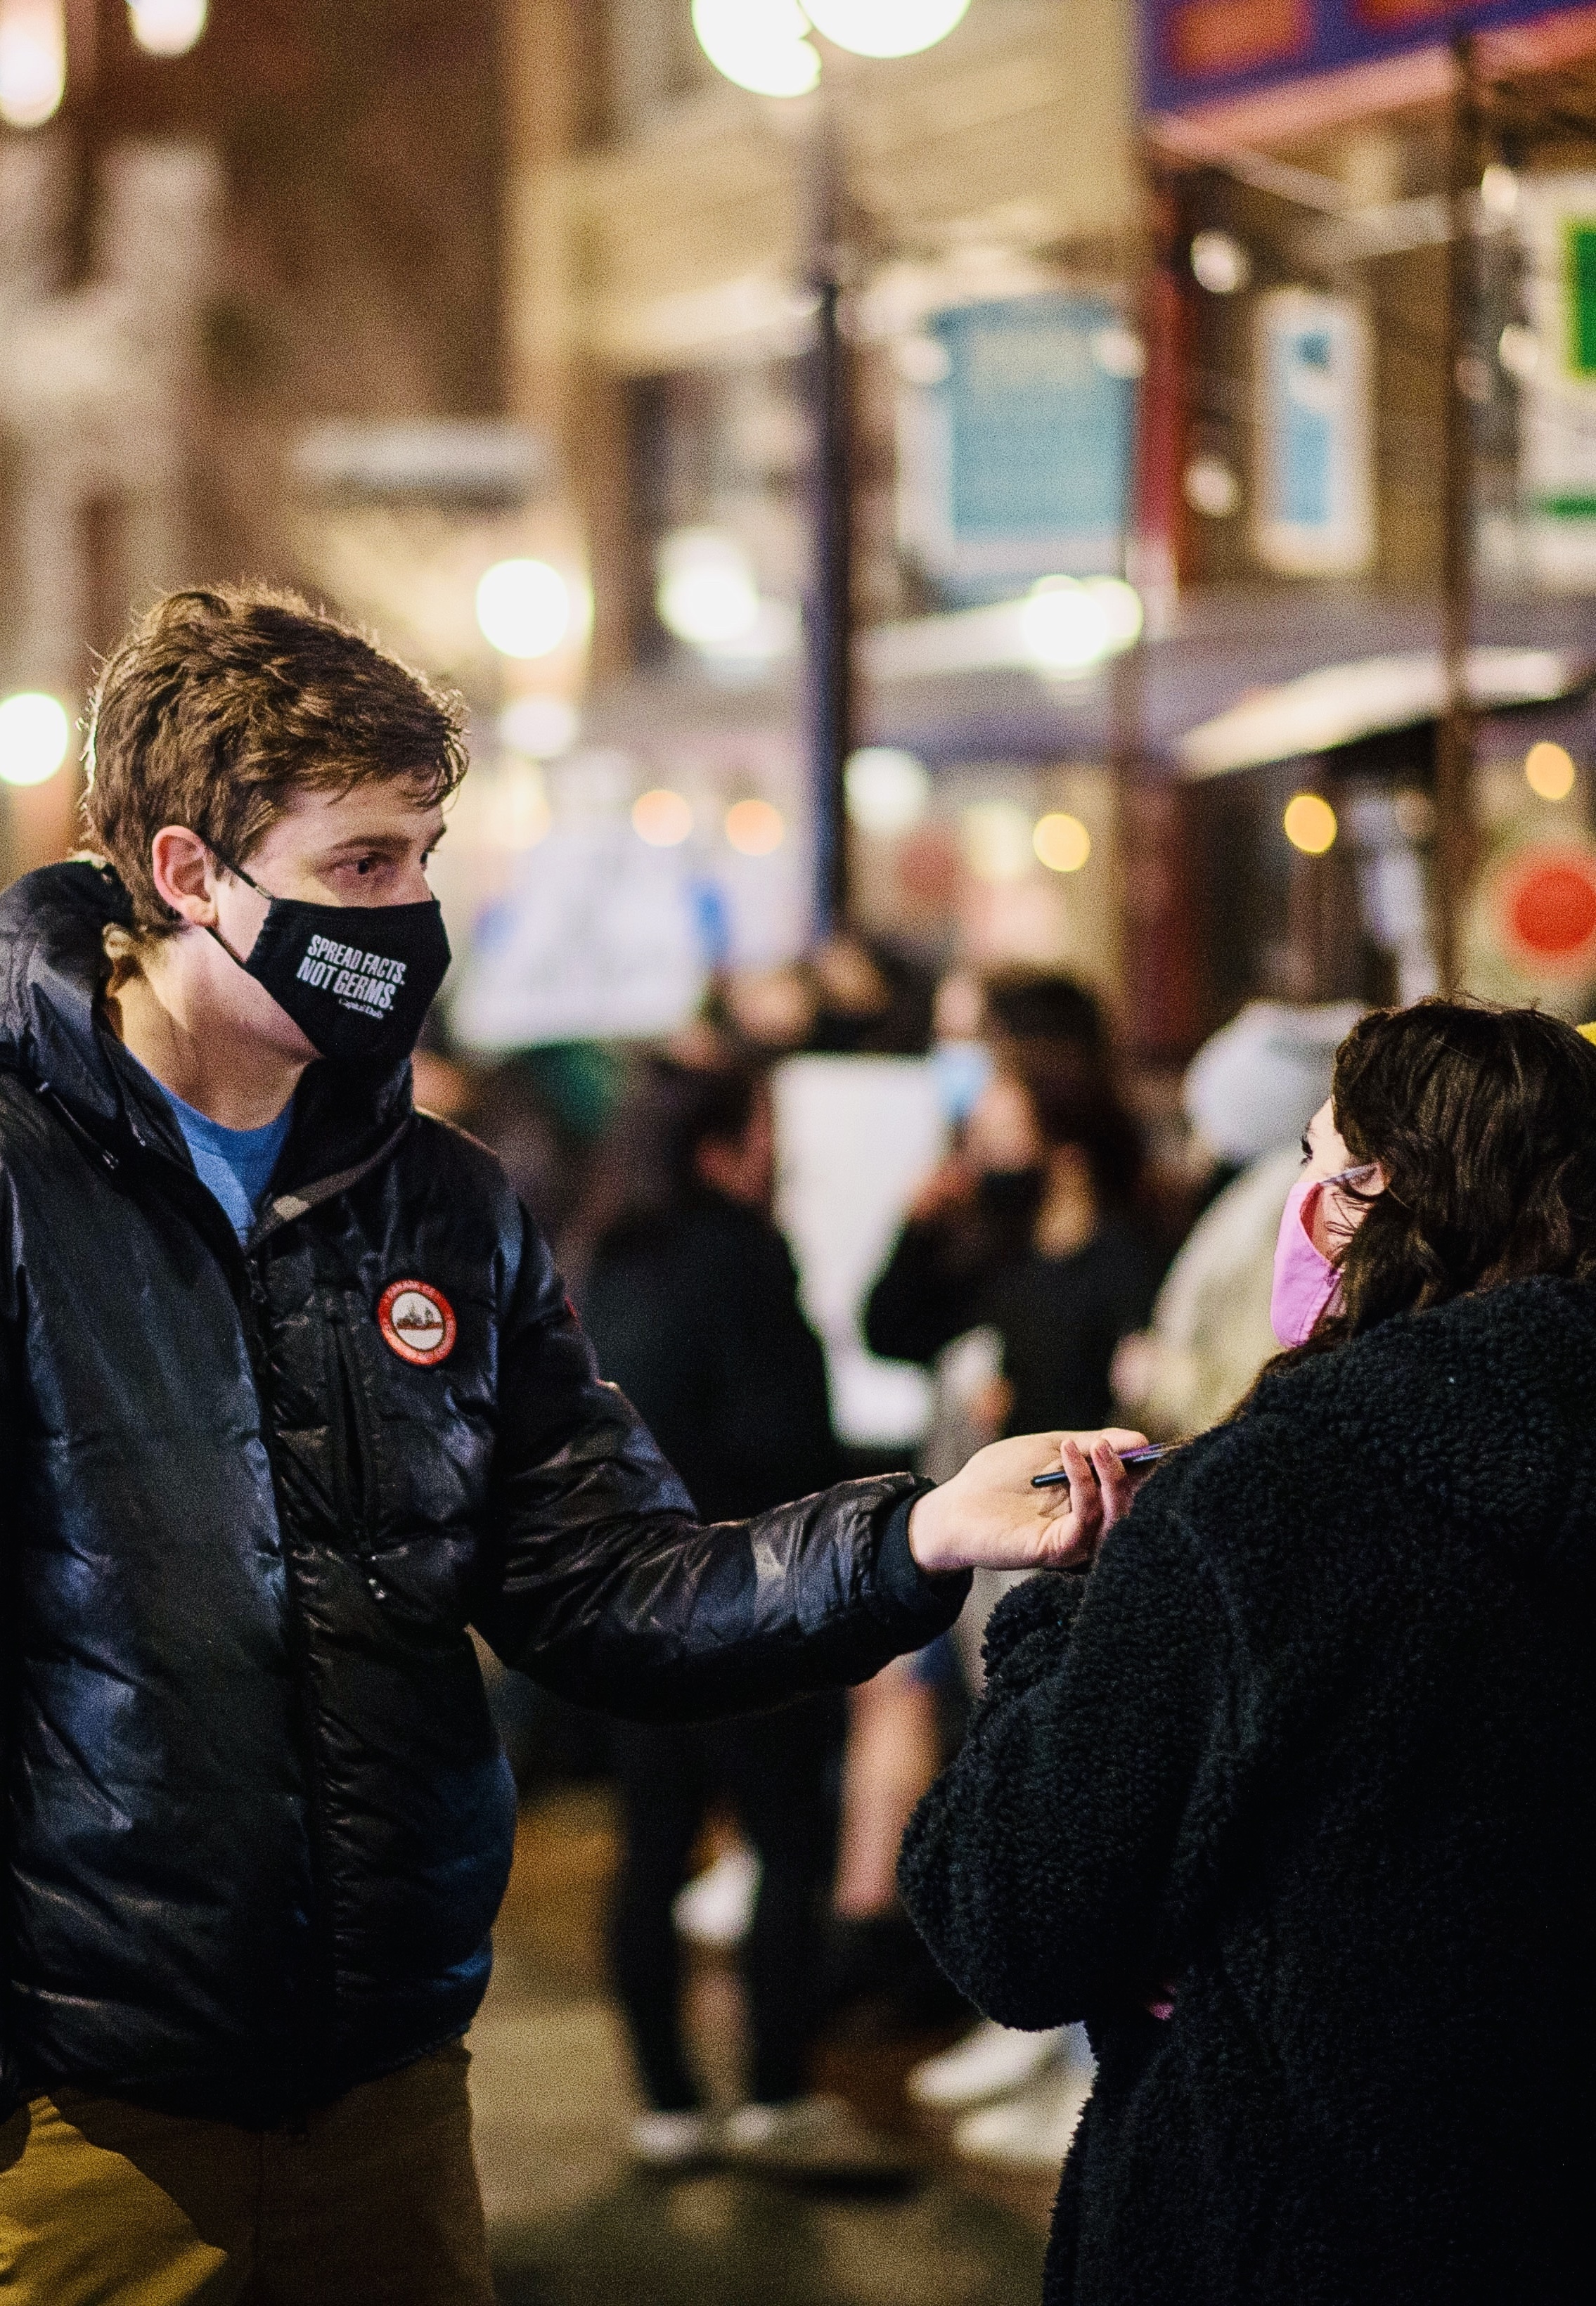 Capital Daily Editor Jimmy Thomson wears a mask while interviewing a person outside a protest at Chuck's Burger Bar in Victoria, BC.